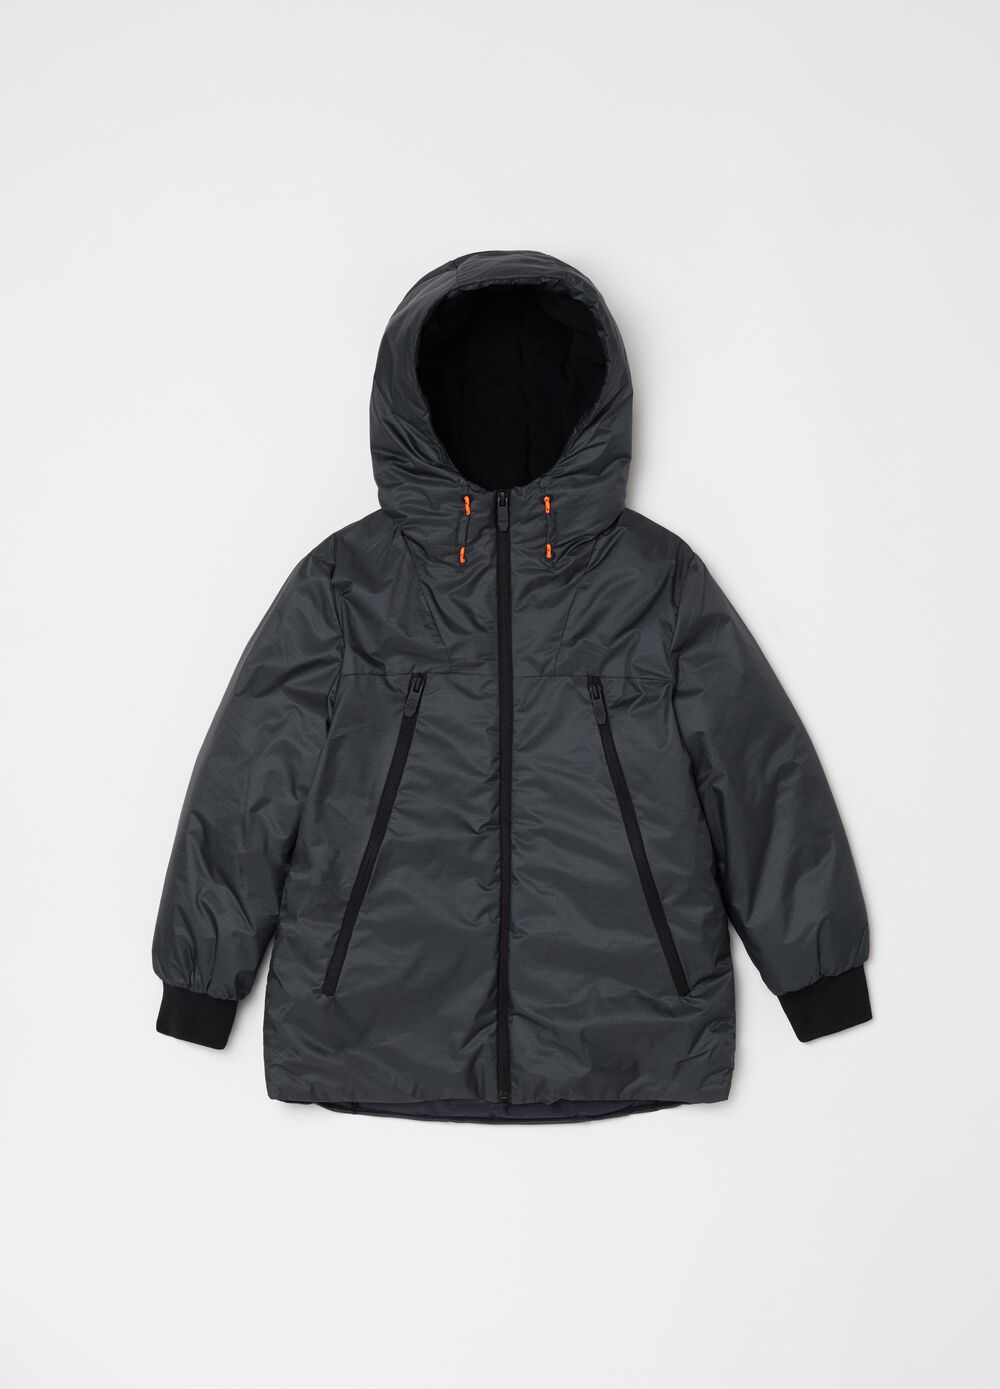 Padded jacket with high neck with zip